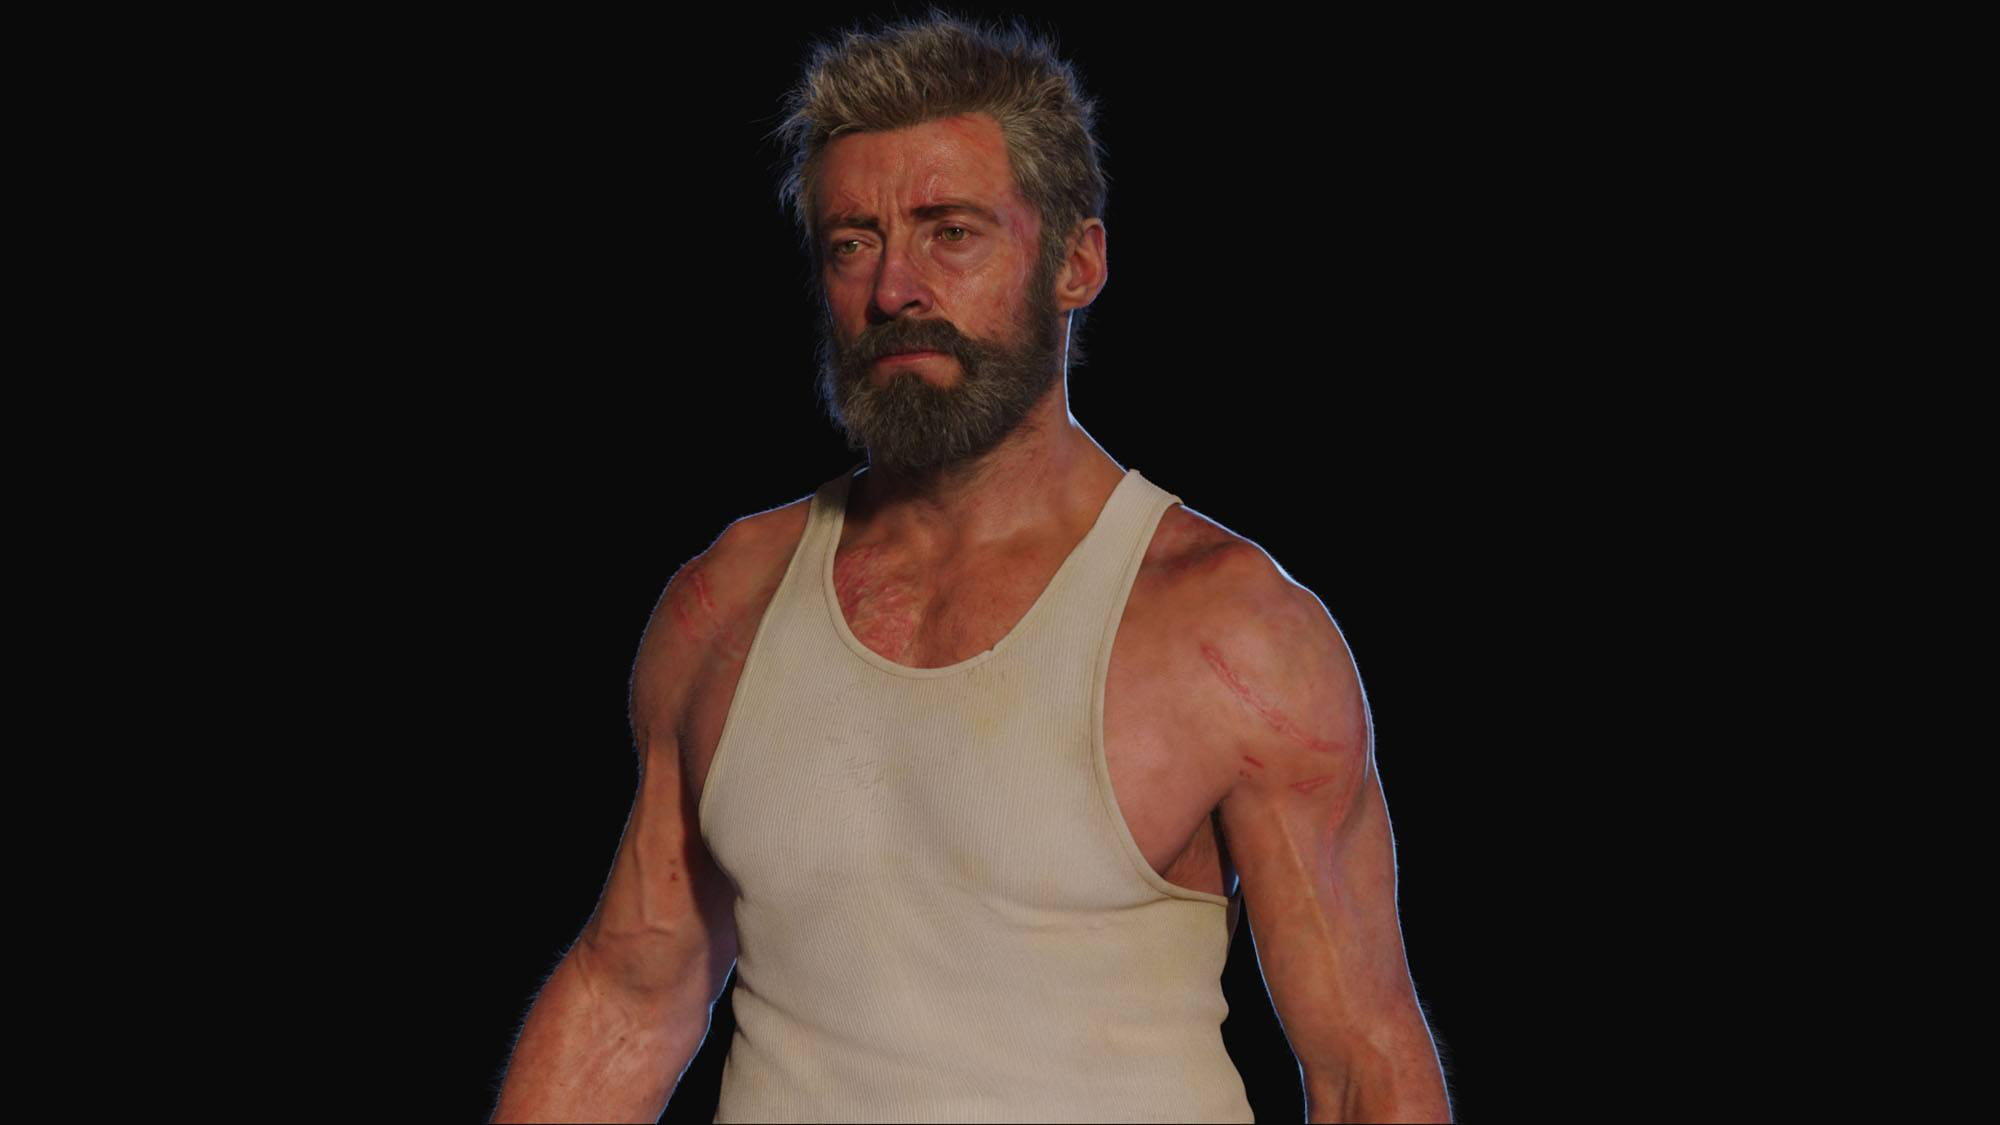 The digital double of Hugh Jackman (© 2017 Marvel. TM and © 2017 Twentieth Century Fox Film Corporation. All rights reserved. Not for sale or duplication.)